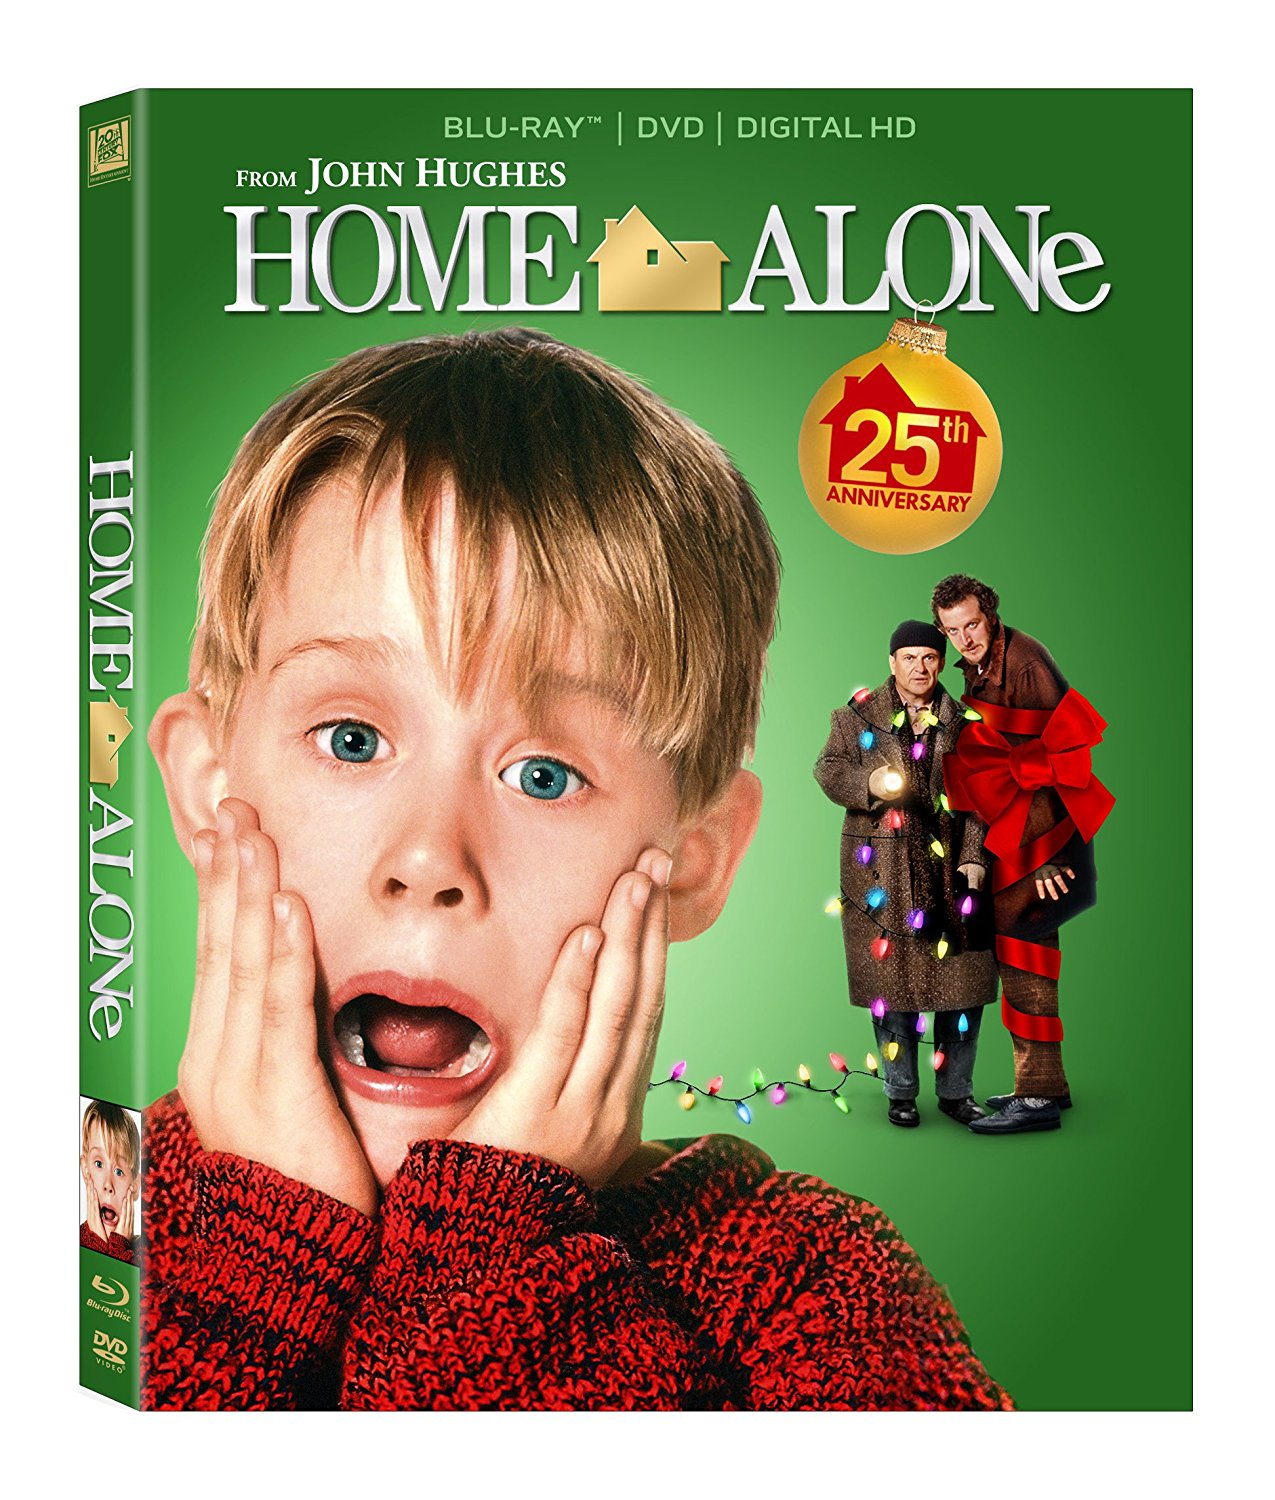 FOX Home Alone Blu-ray Box Art